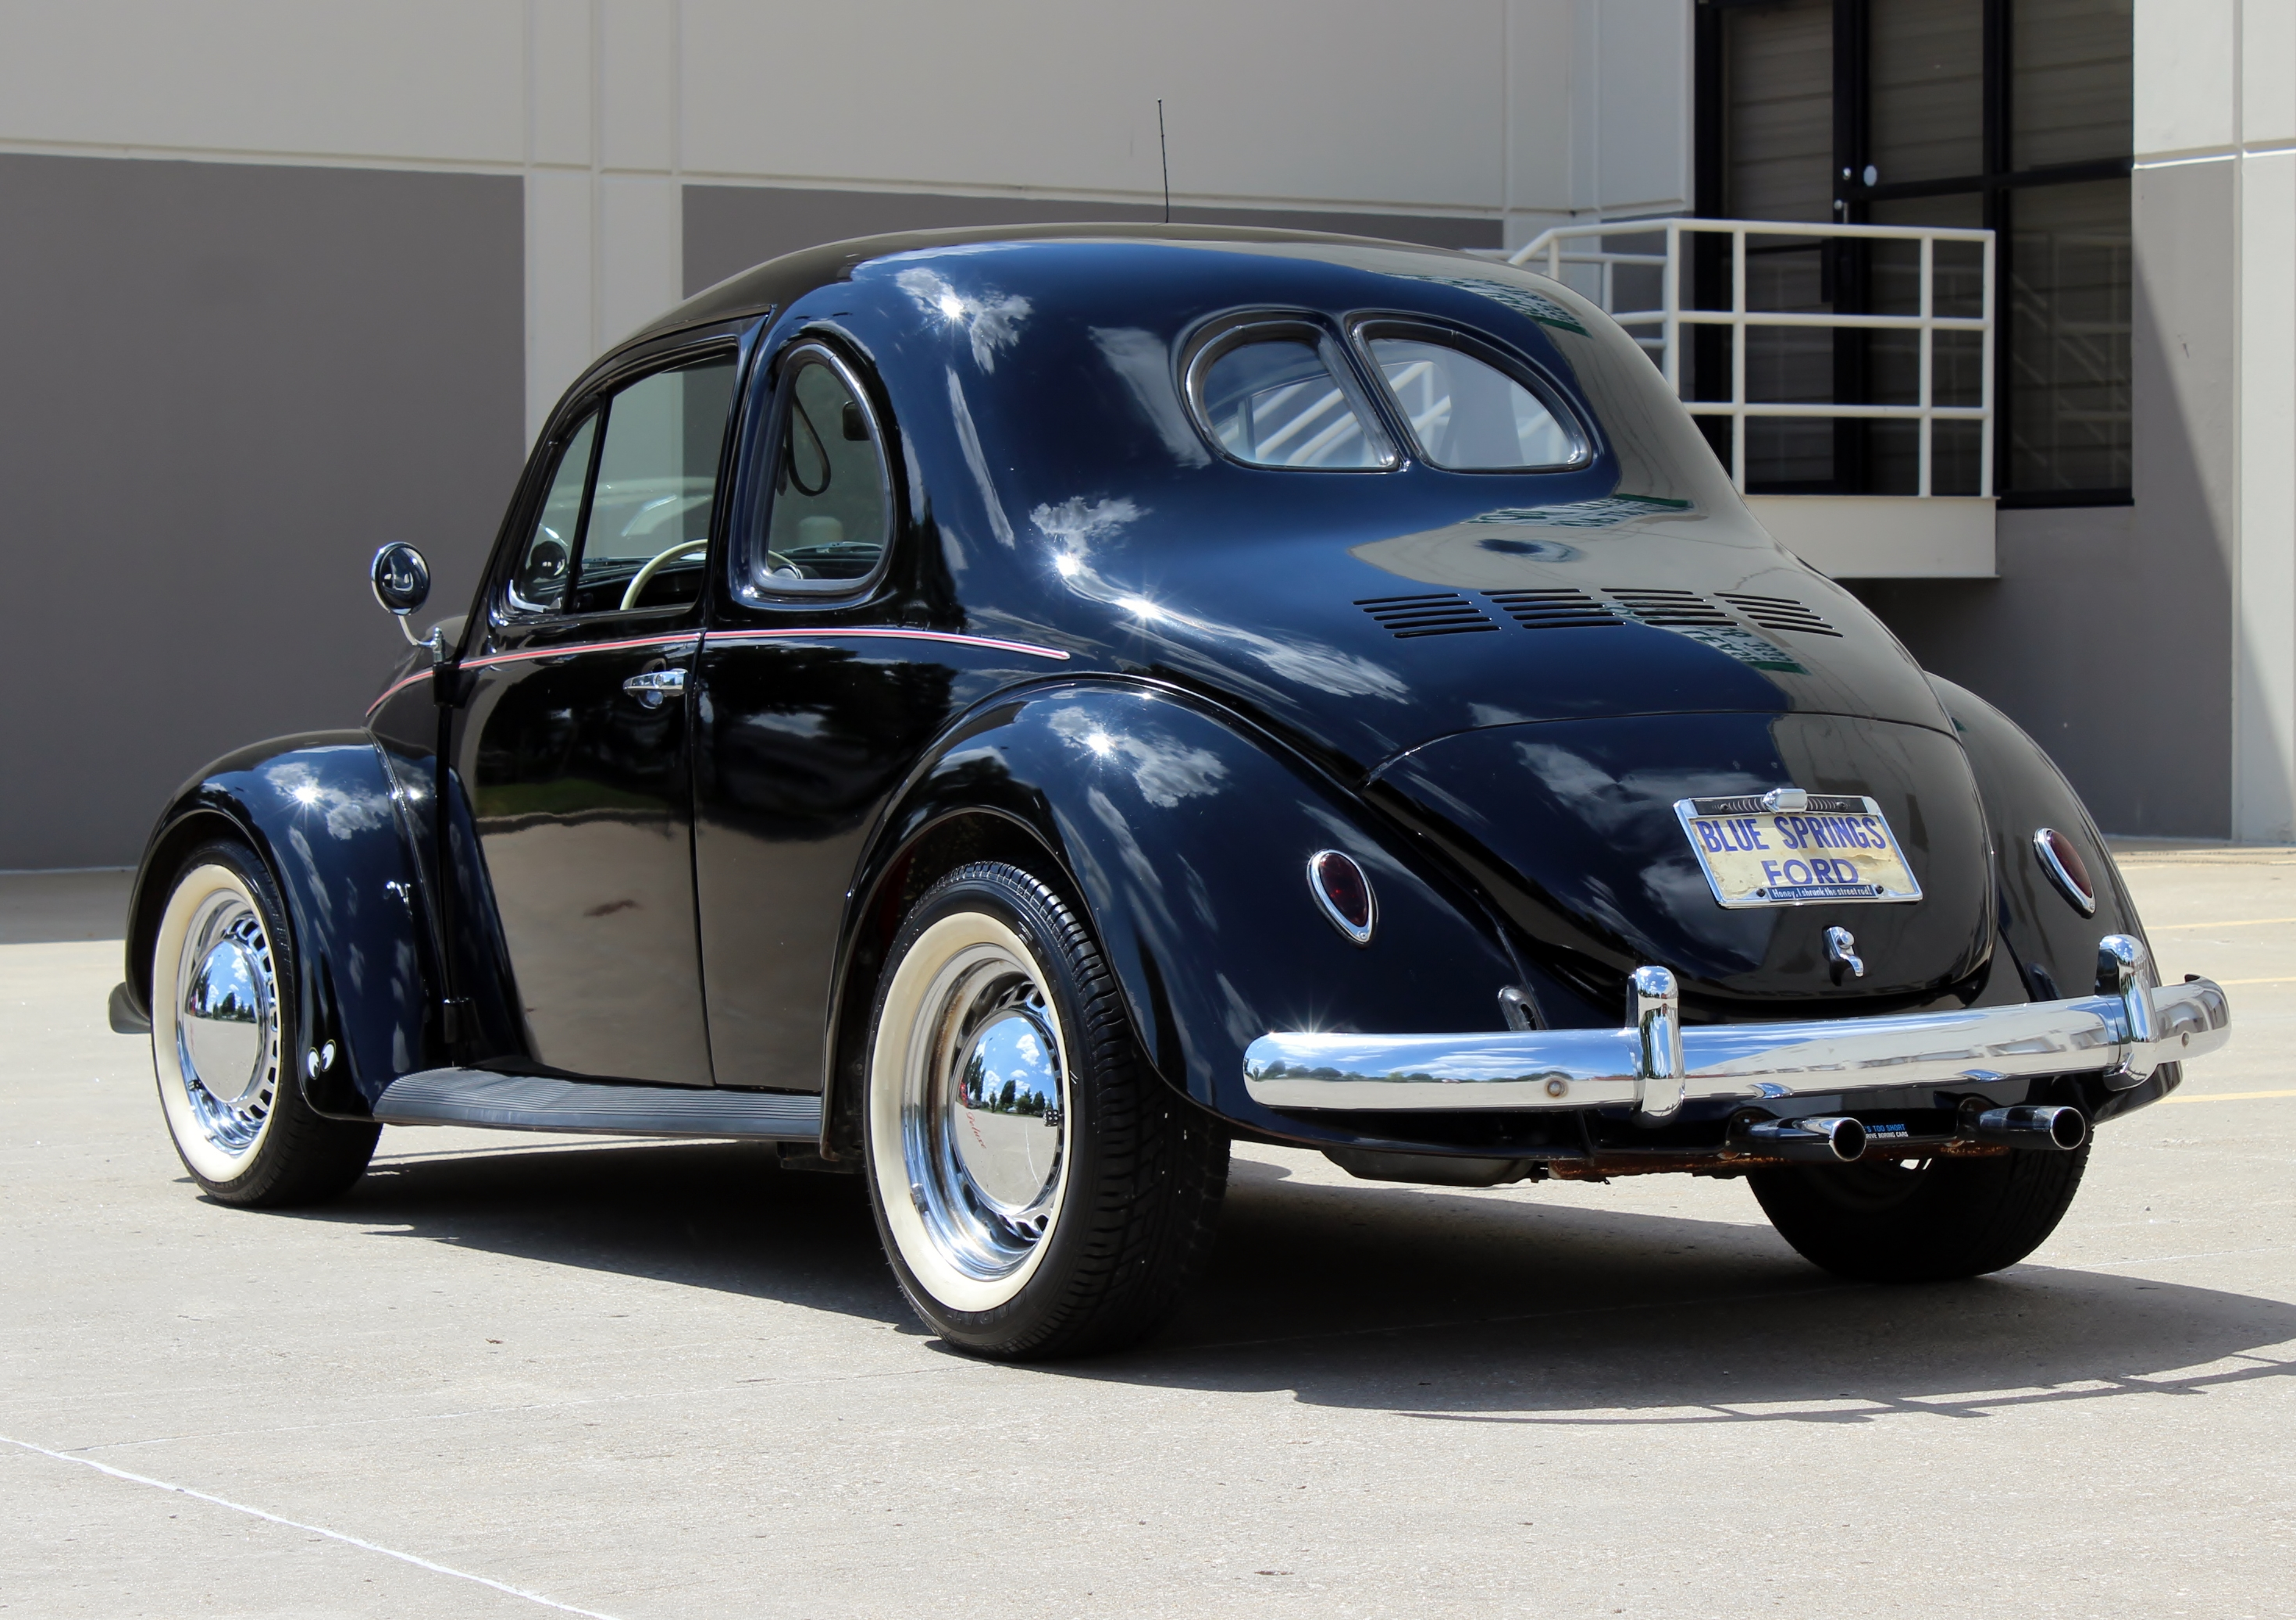 1971 VOLKSWAGEN 40 FORD COUPE BEETLE for sale, Muscle Cars, Collector, Antique, and Vintage Cars ...